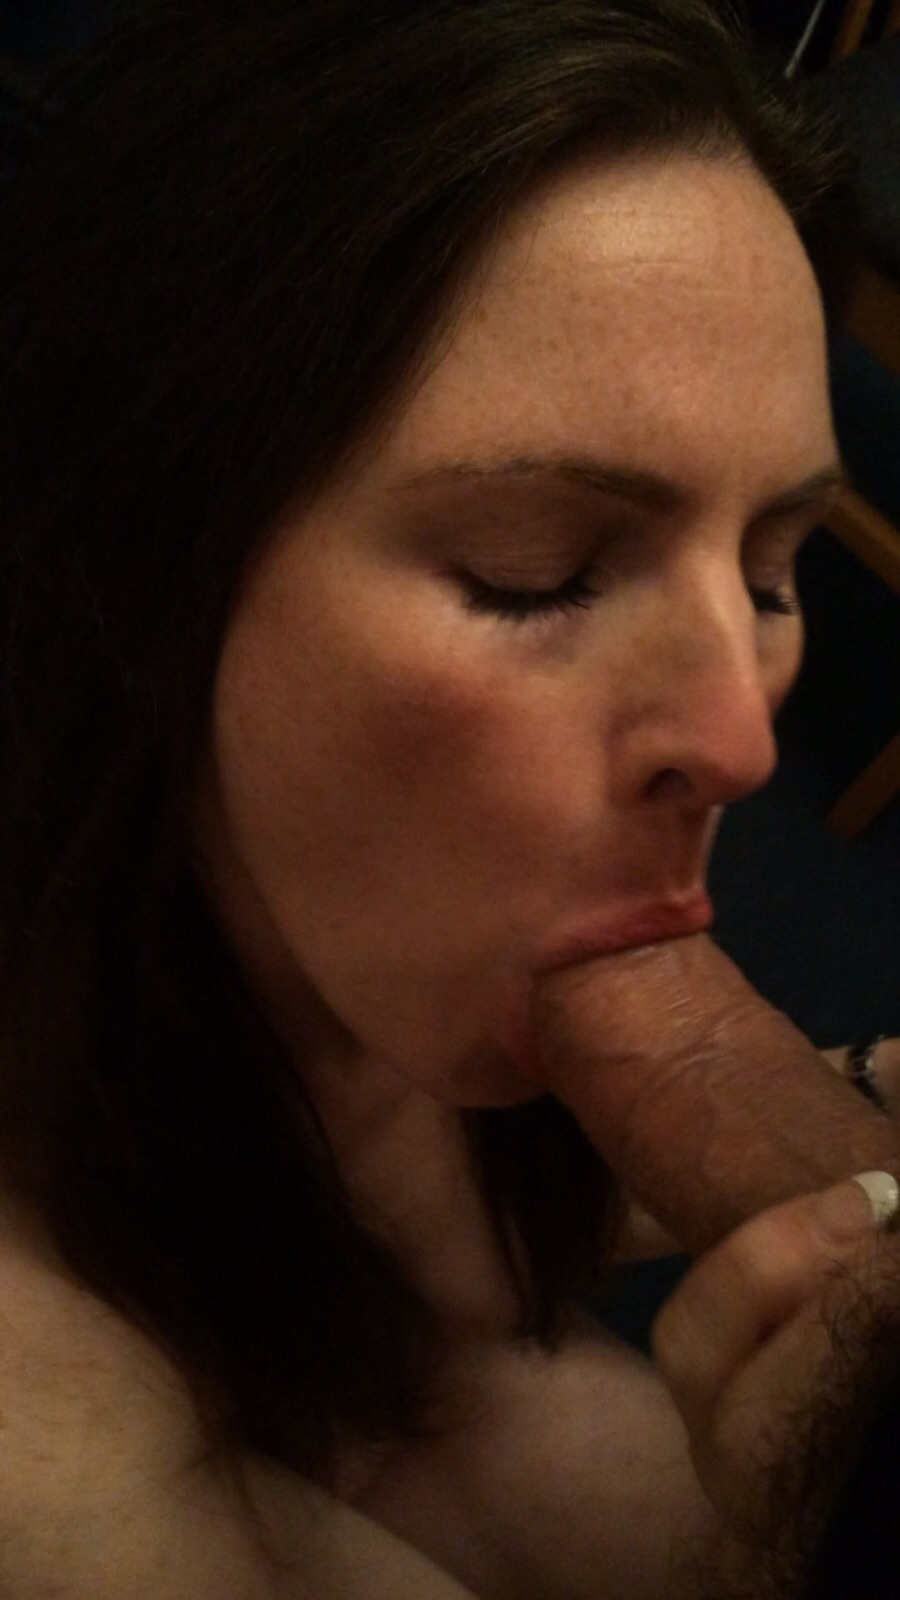 black booty fuck porn images moving sex images